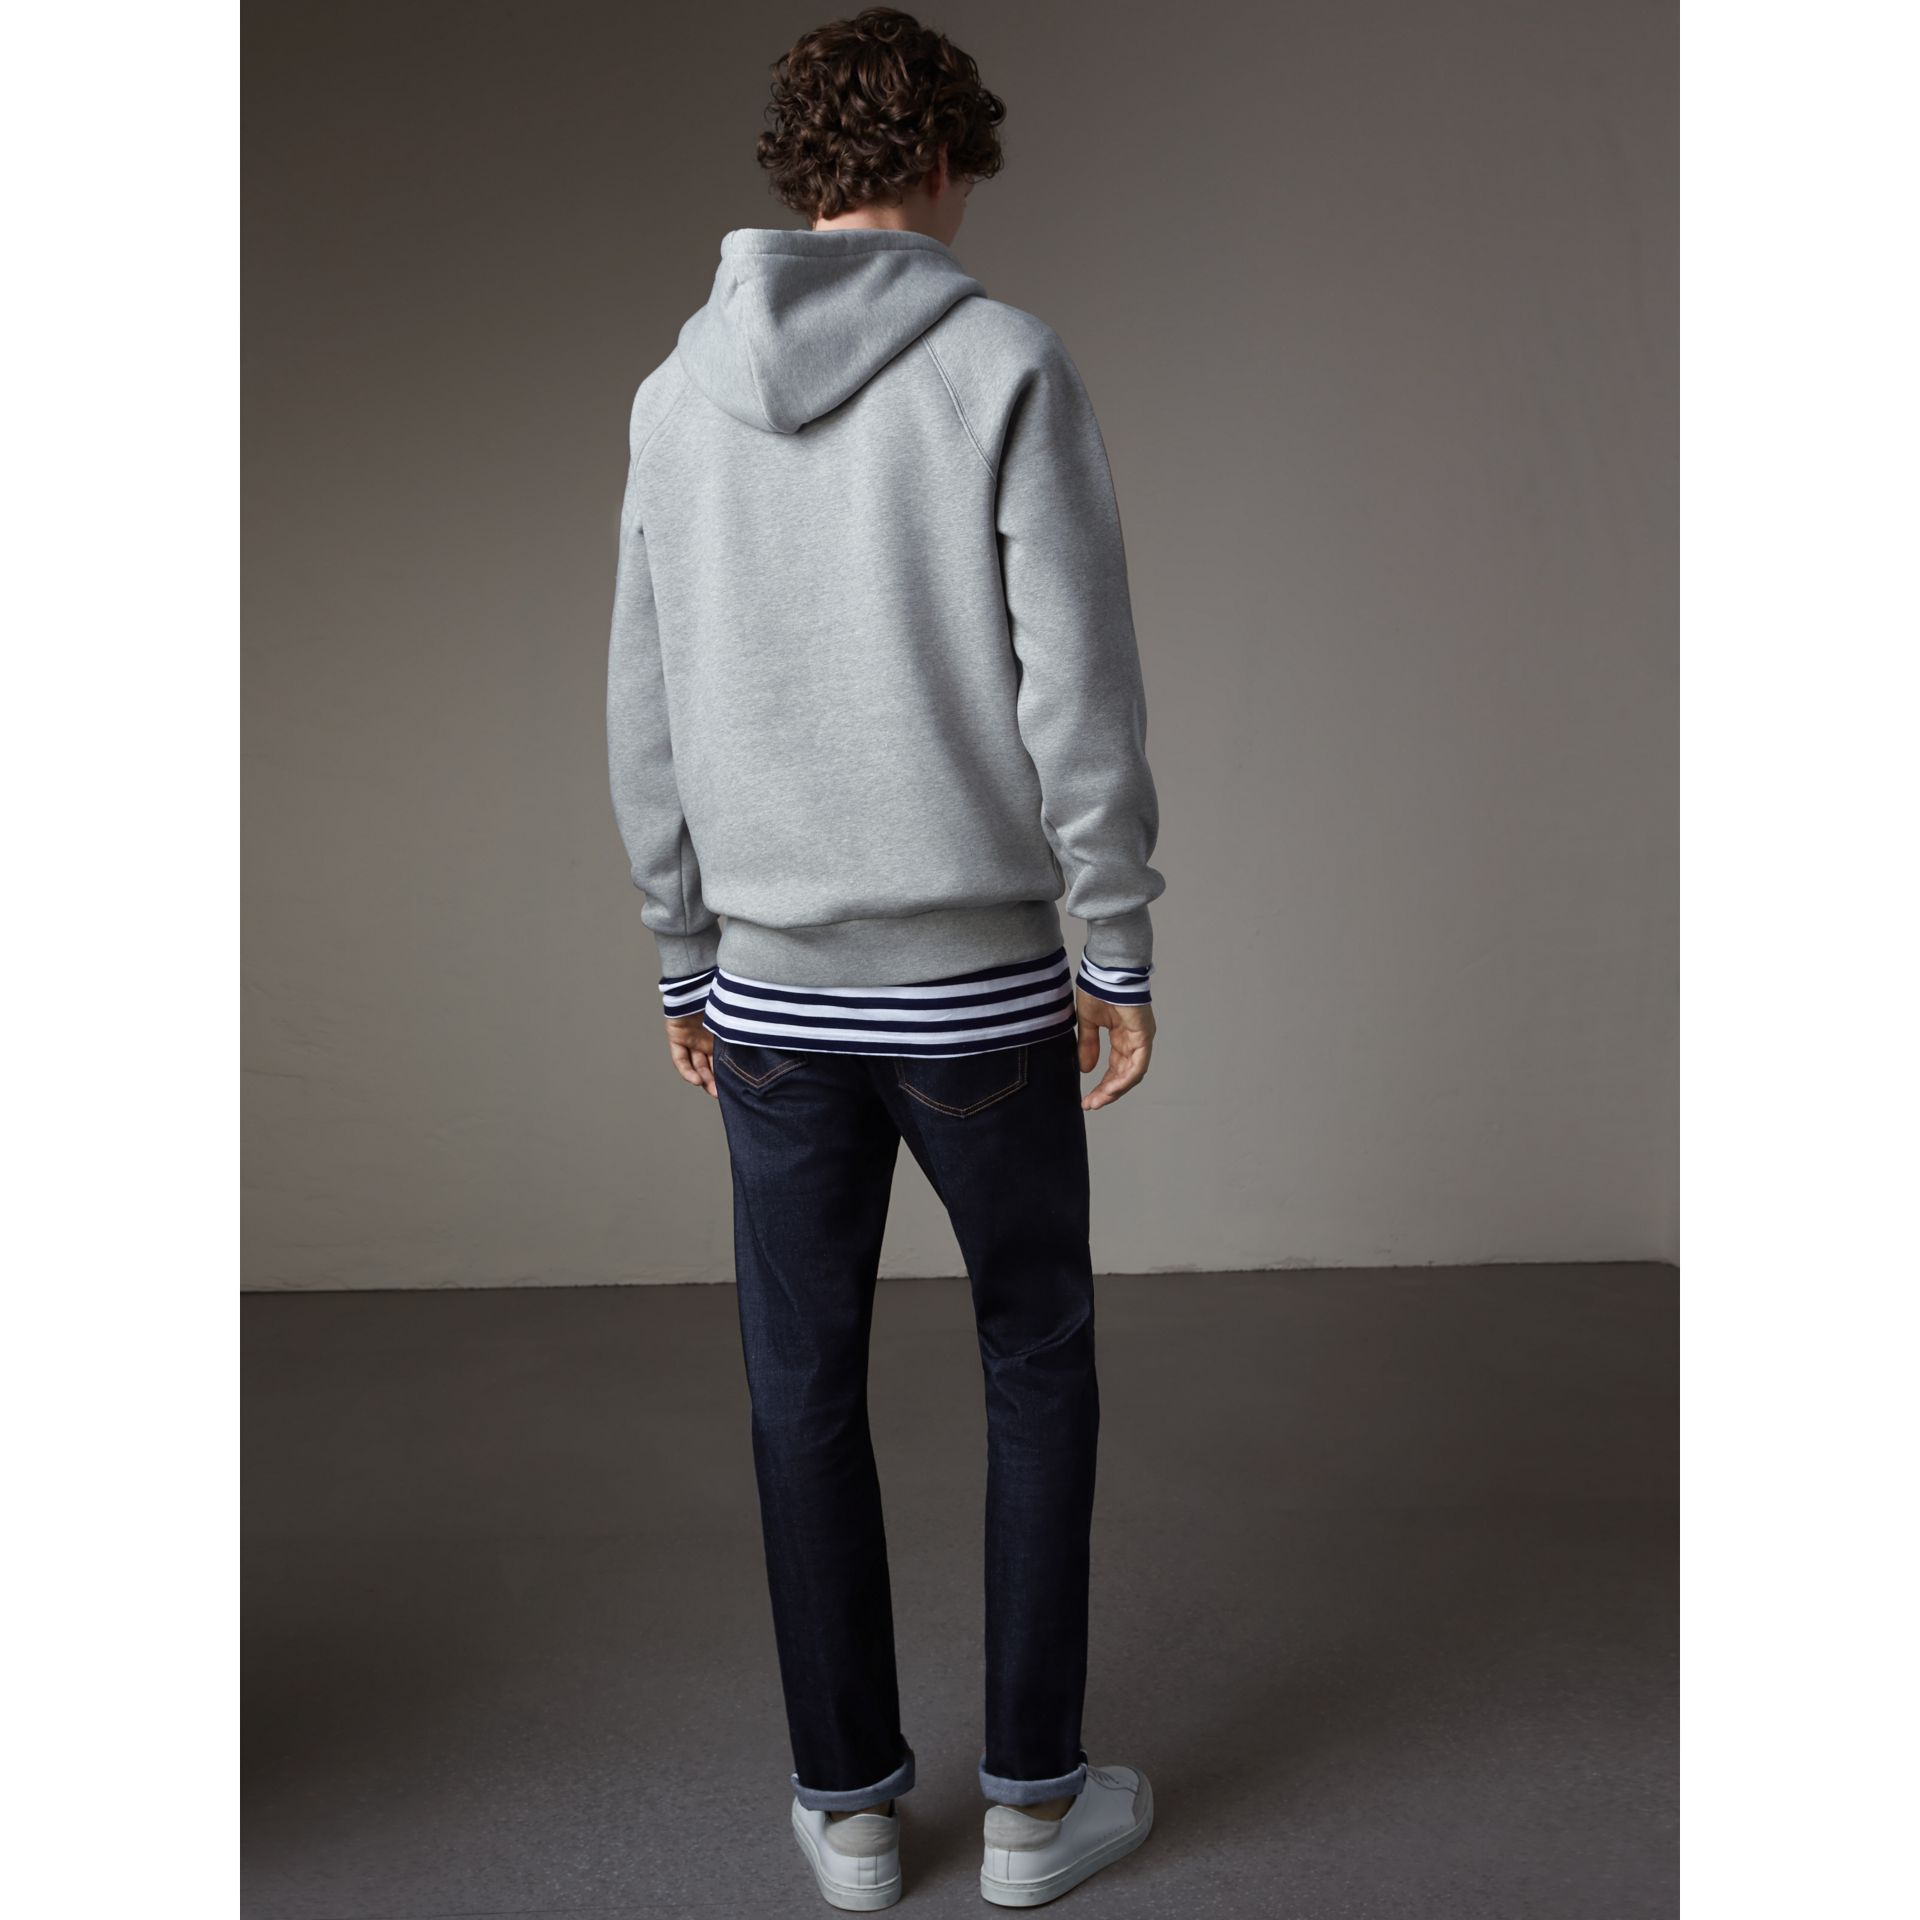 Sweat-shirt brodé à capuche (Camaïeu De Gris) - Homme | Burberry - photo de la galerie 2